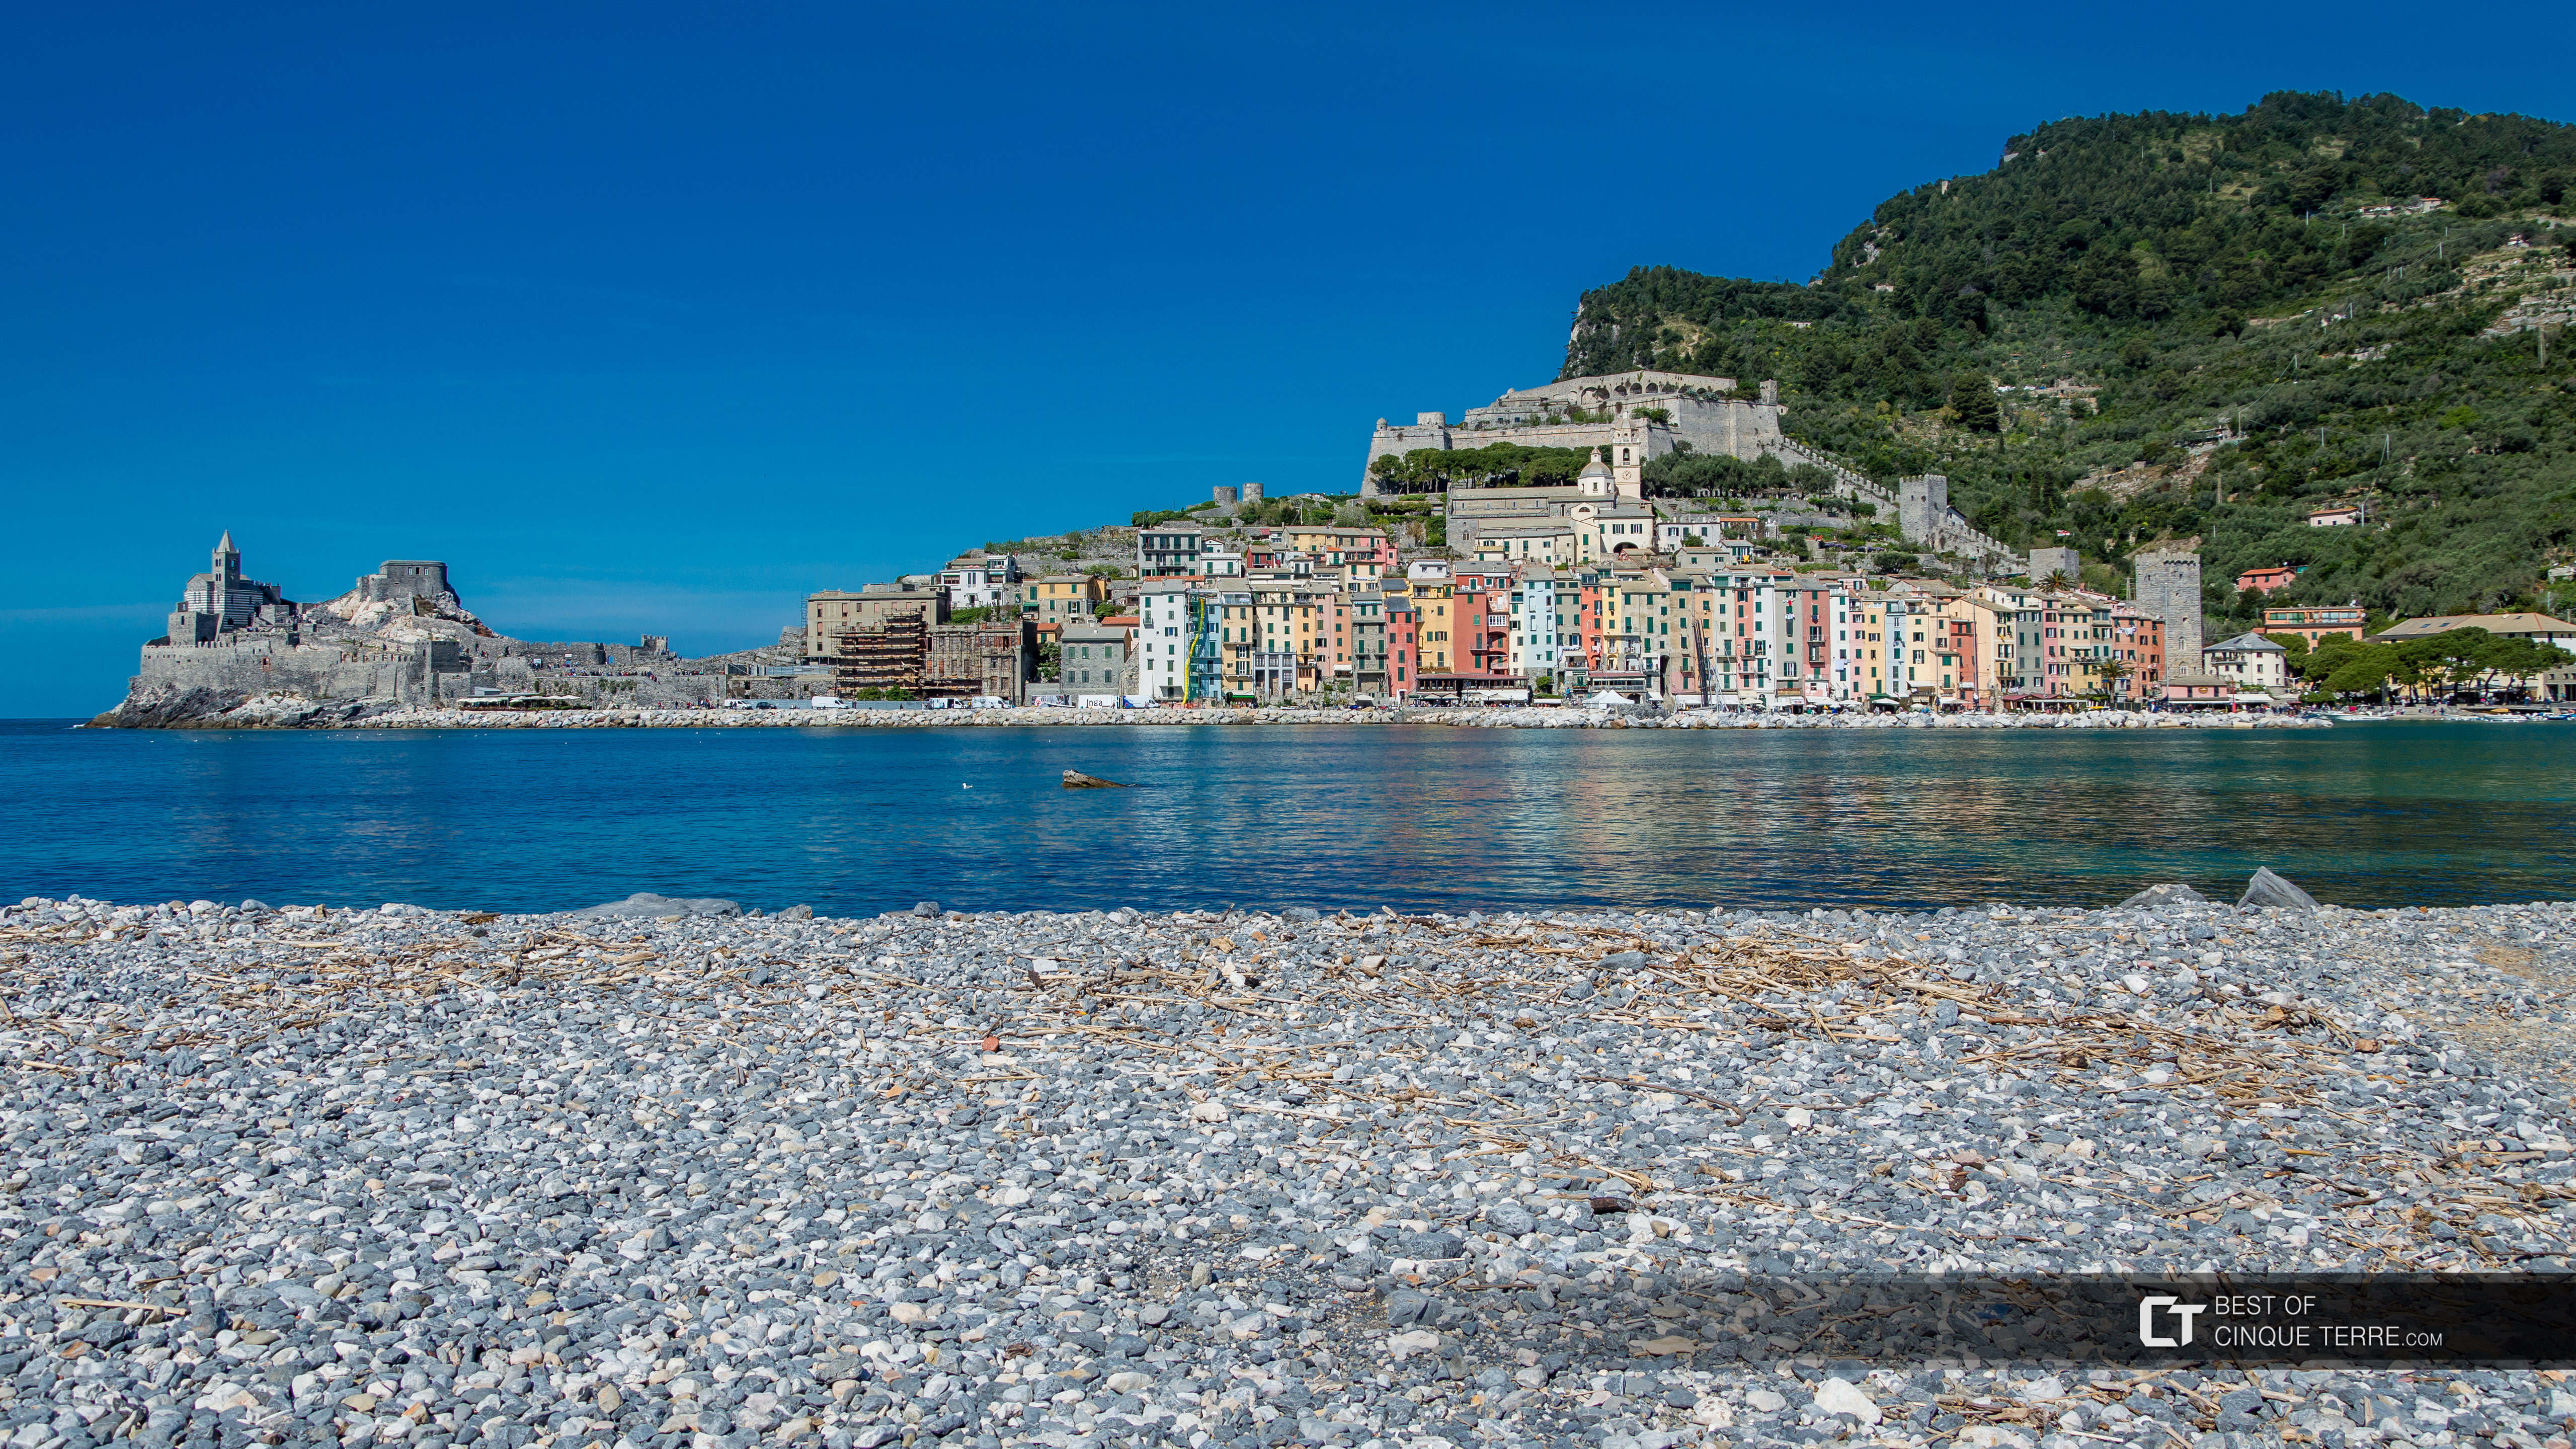 View of the village from the beach on the island of Palmaria, Portovenere, Italy